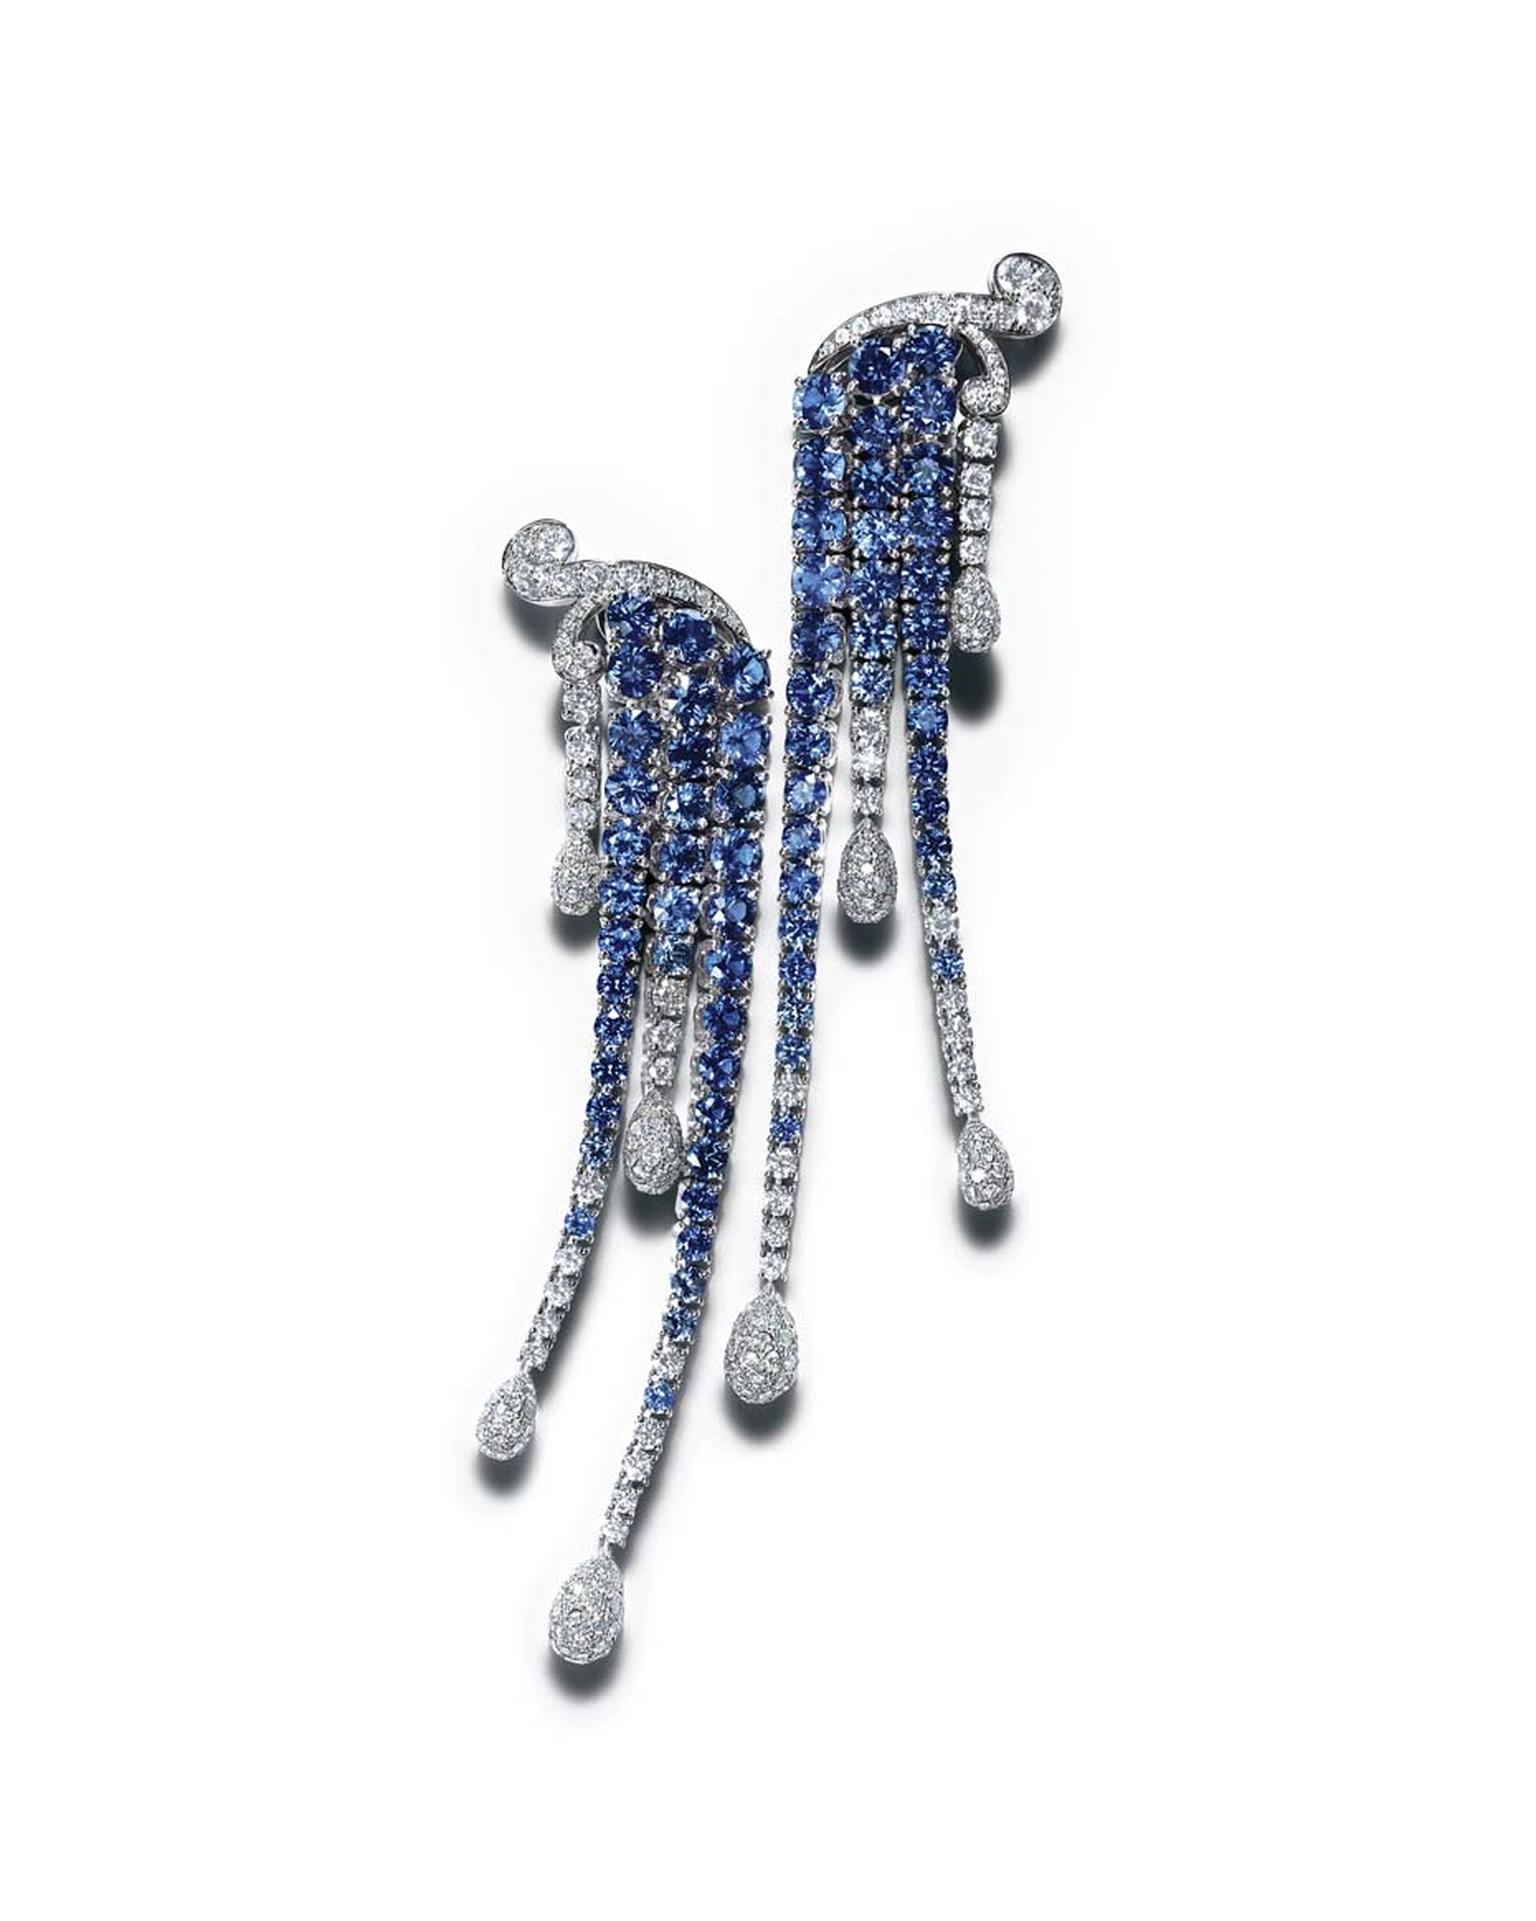 Tiffany earrings with sapphires and diamonds